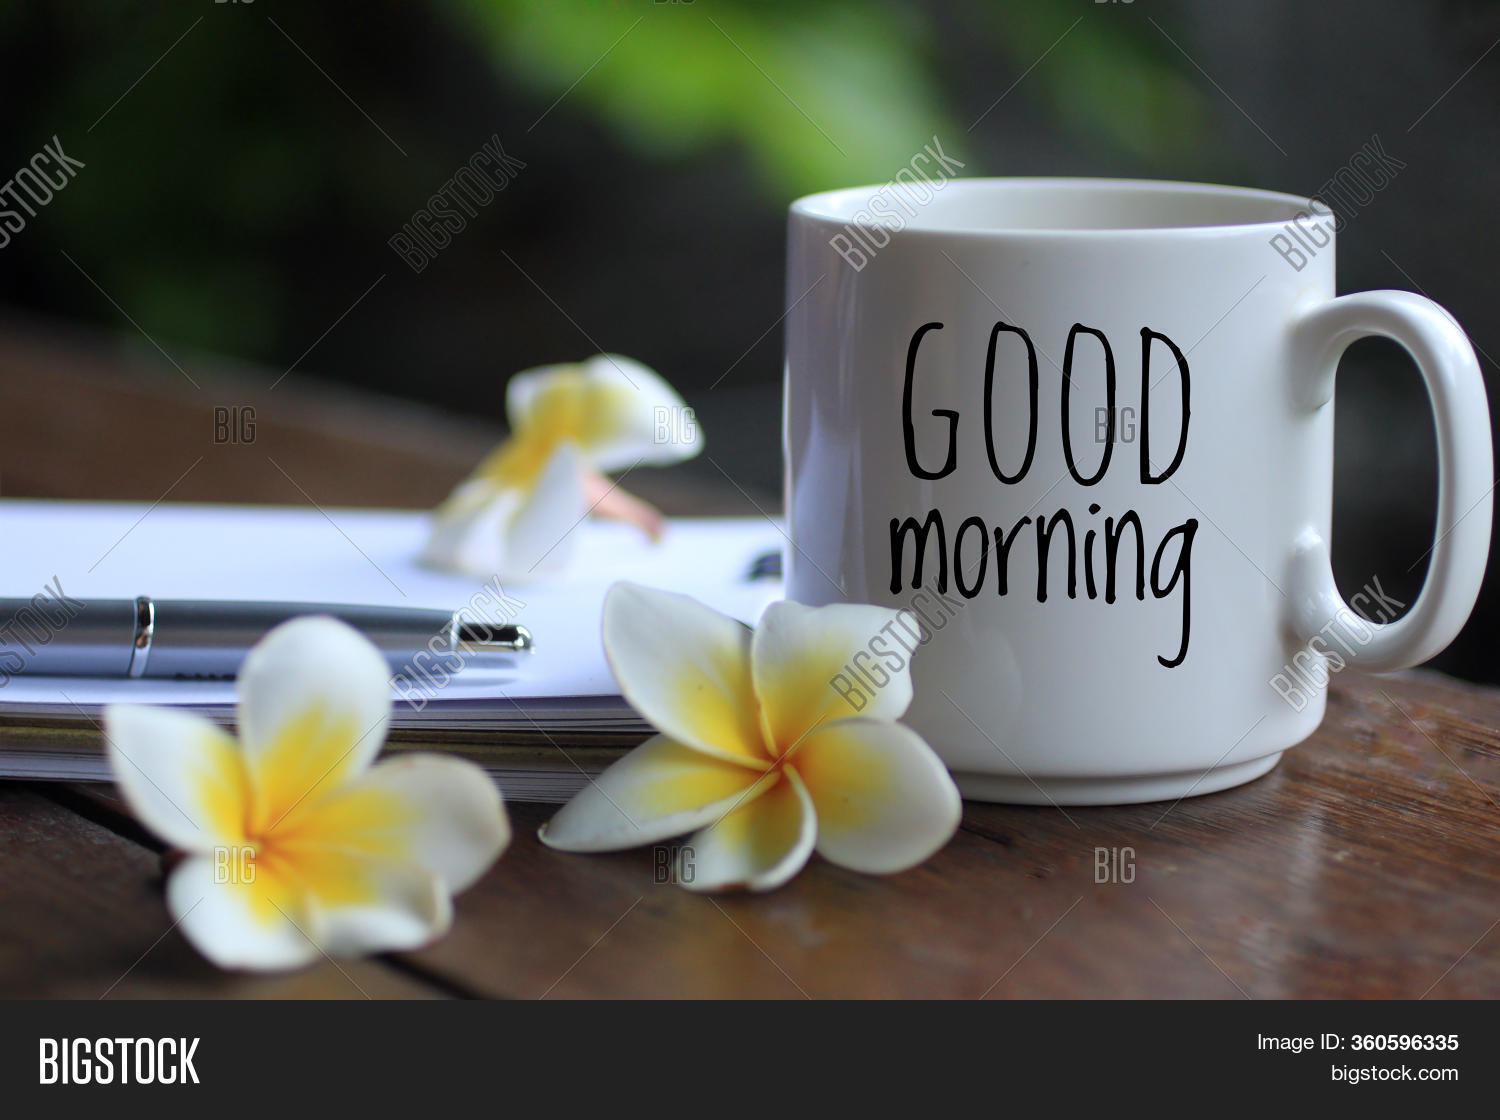 Good Morning Text Image Photo Free Trial Bigstock